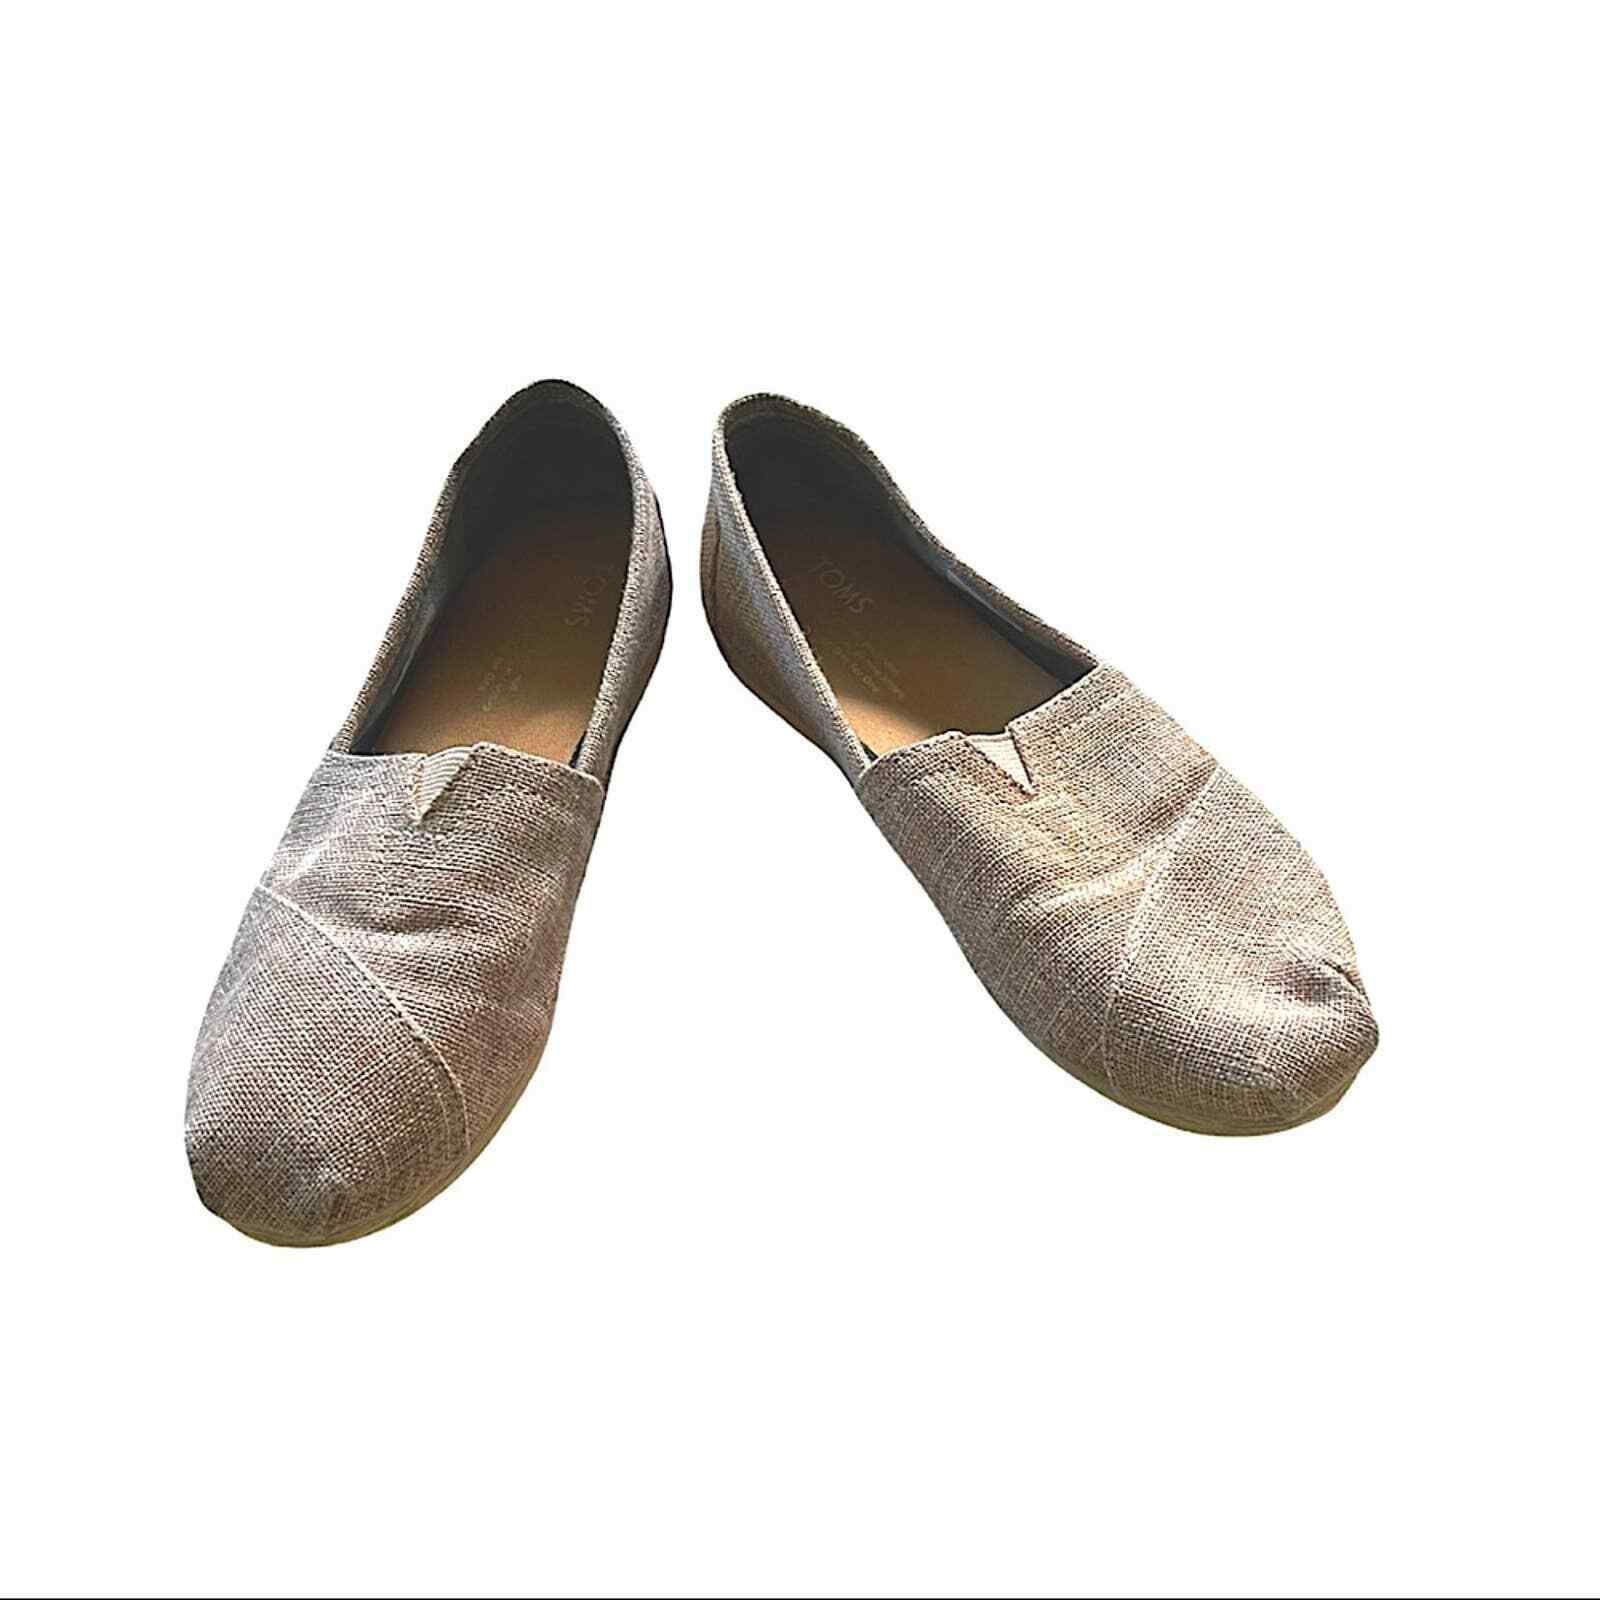 TOMS Slip-on Shoes Women's Size 7 Light Brown w/ Gold Thread